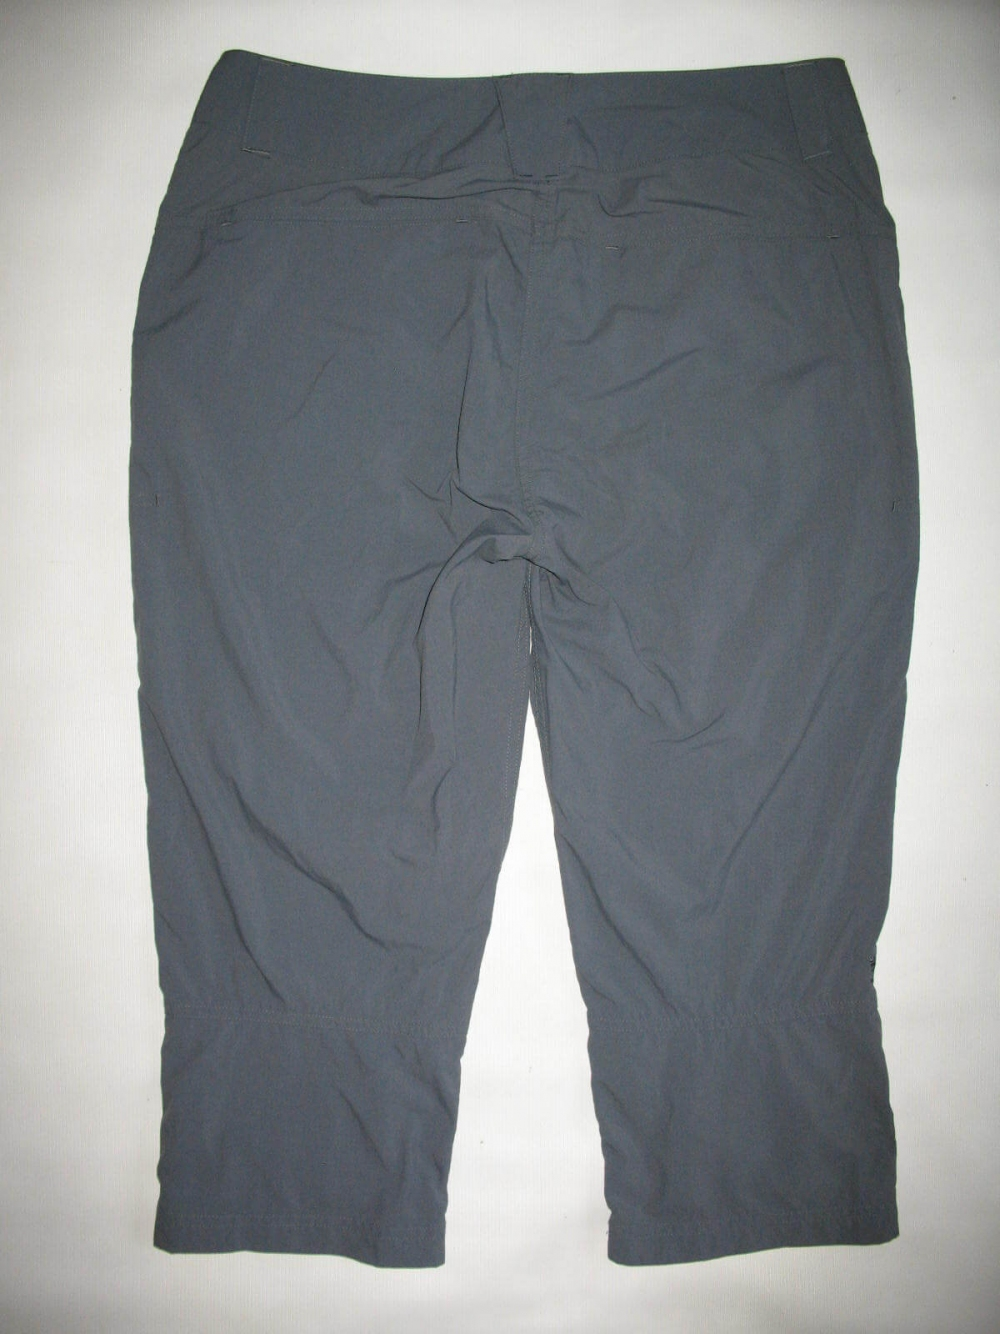 Бриджи SALEWA nola dry 3/4 pants lady (размер XL/L) - 1